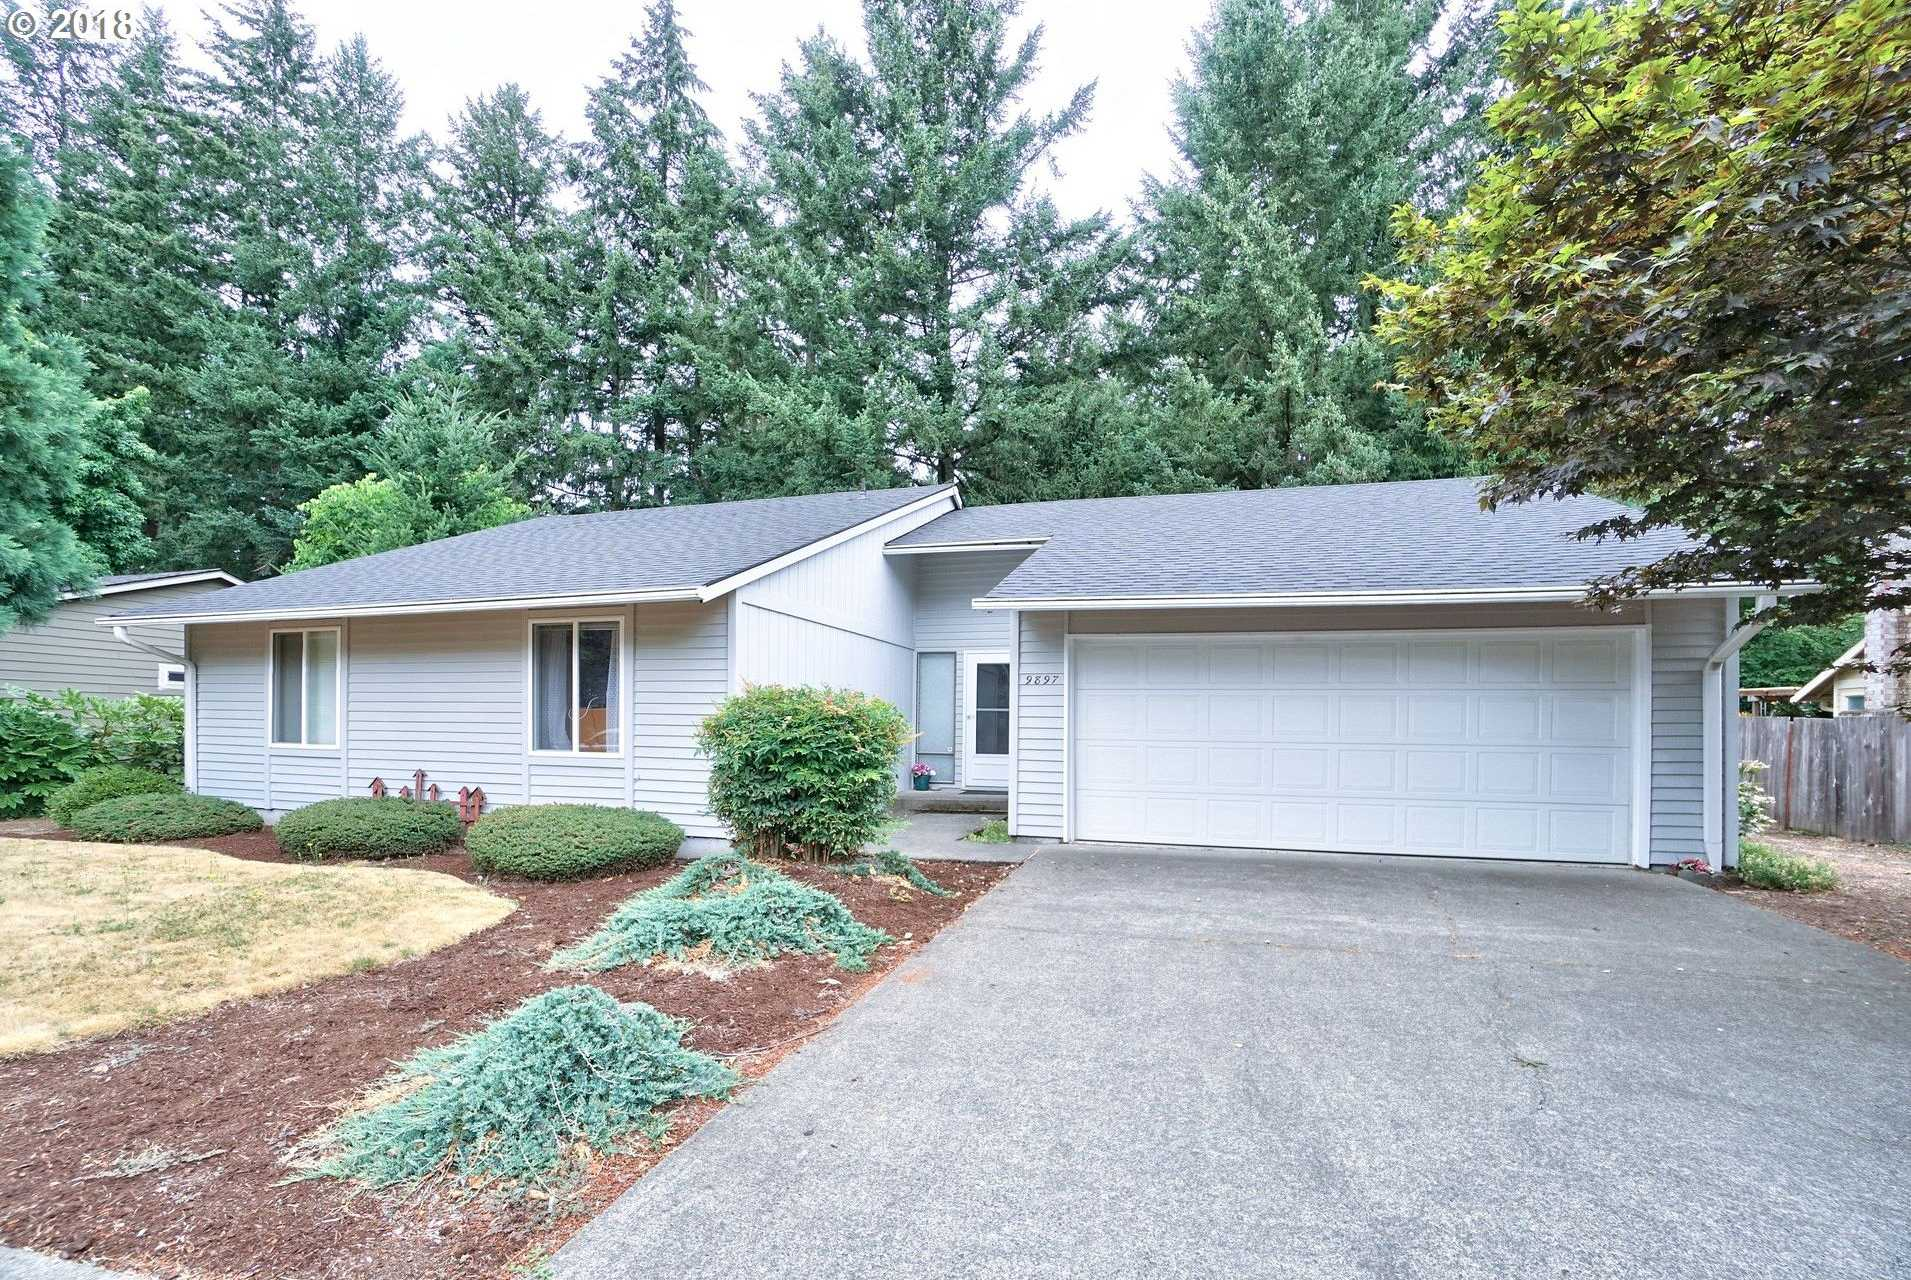 $385,000   3Br/2Ba   For Sale In Tualatin ...